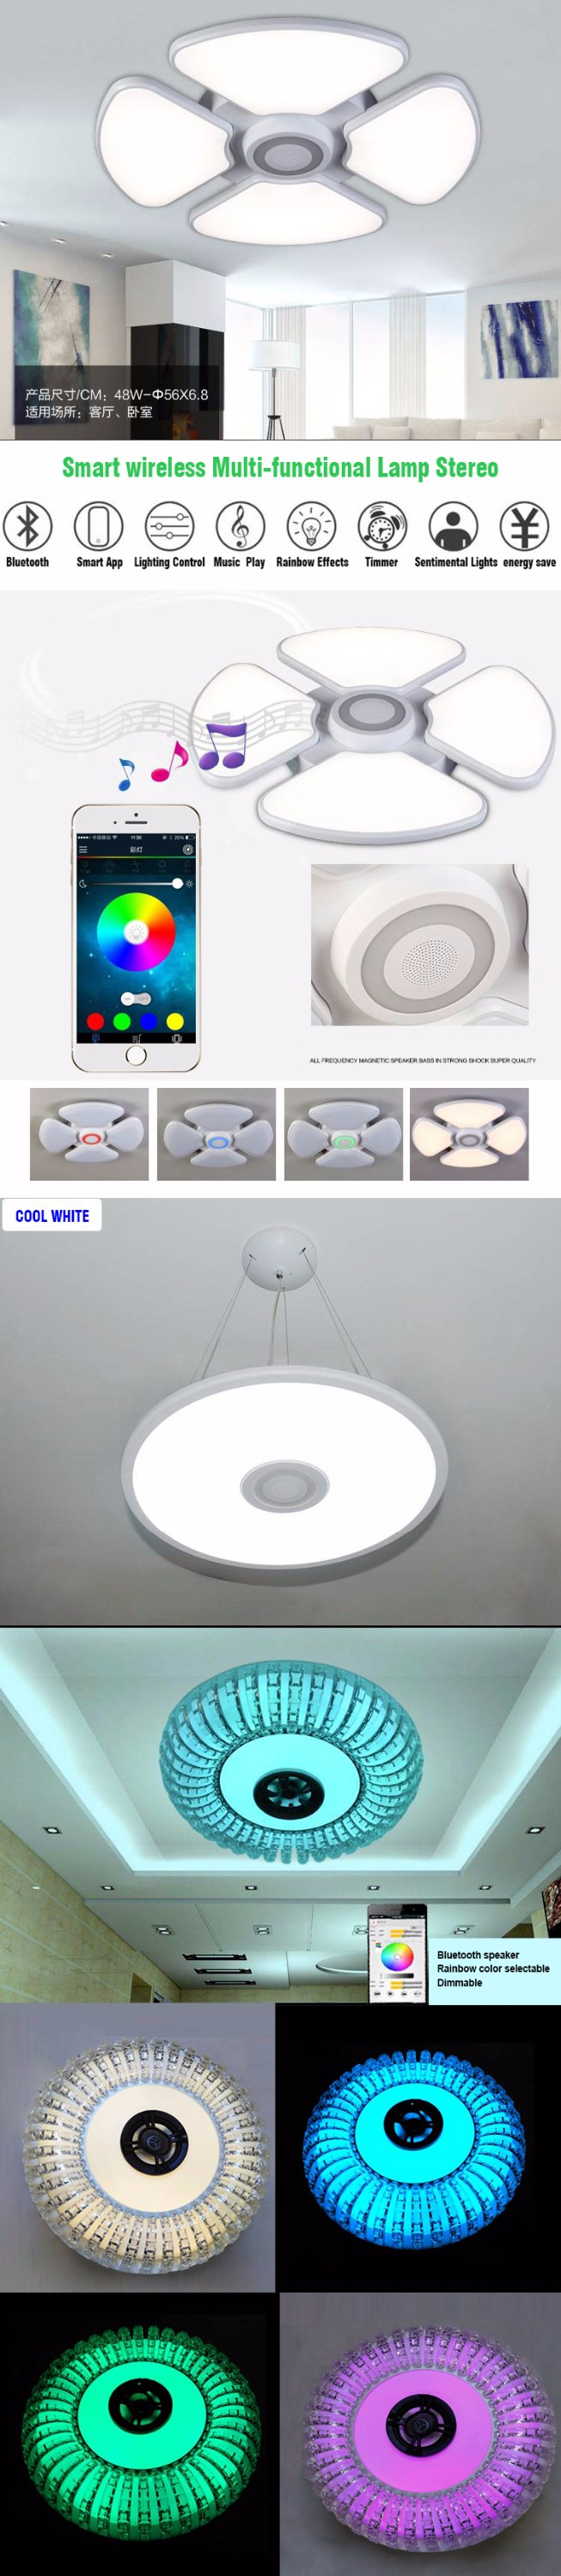 High power led light cool white warm white music box ceiling light with Bluetooth speaker